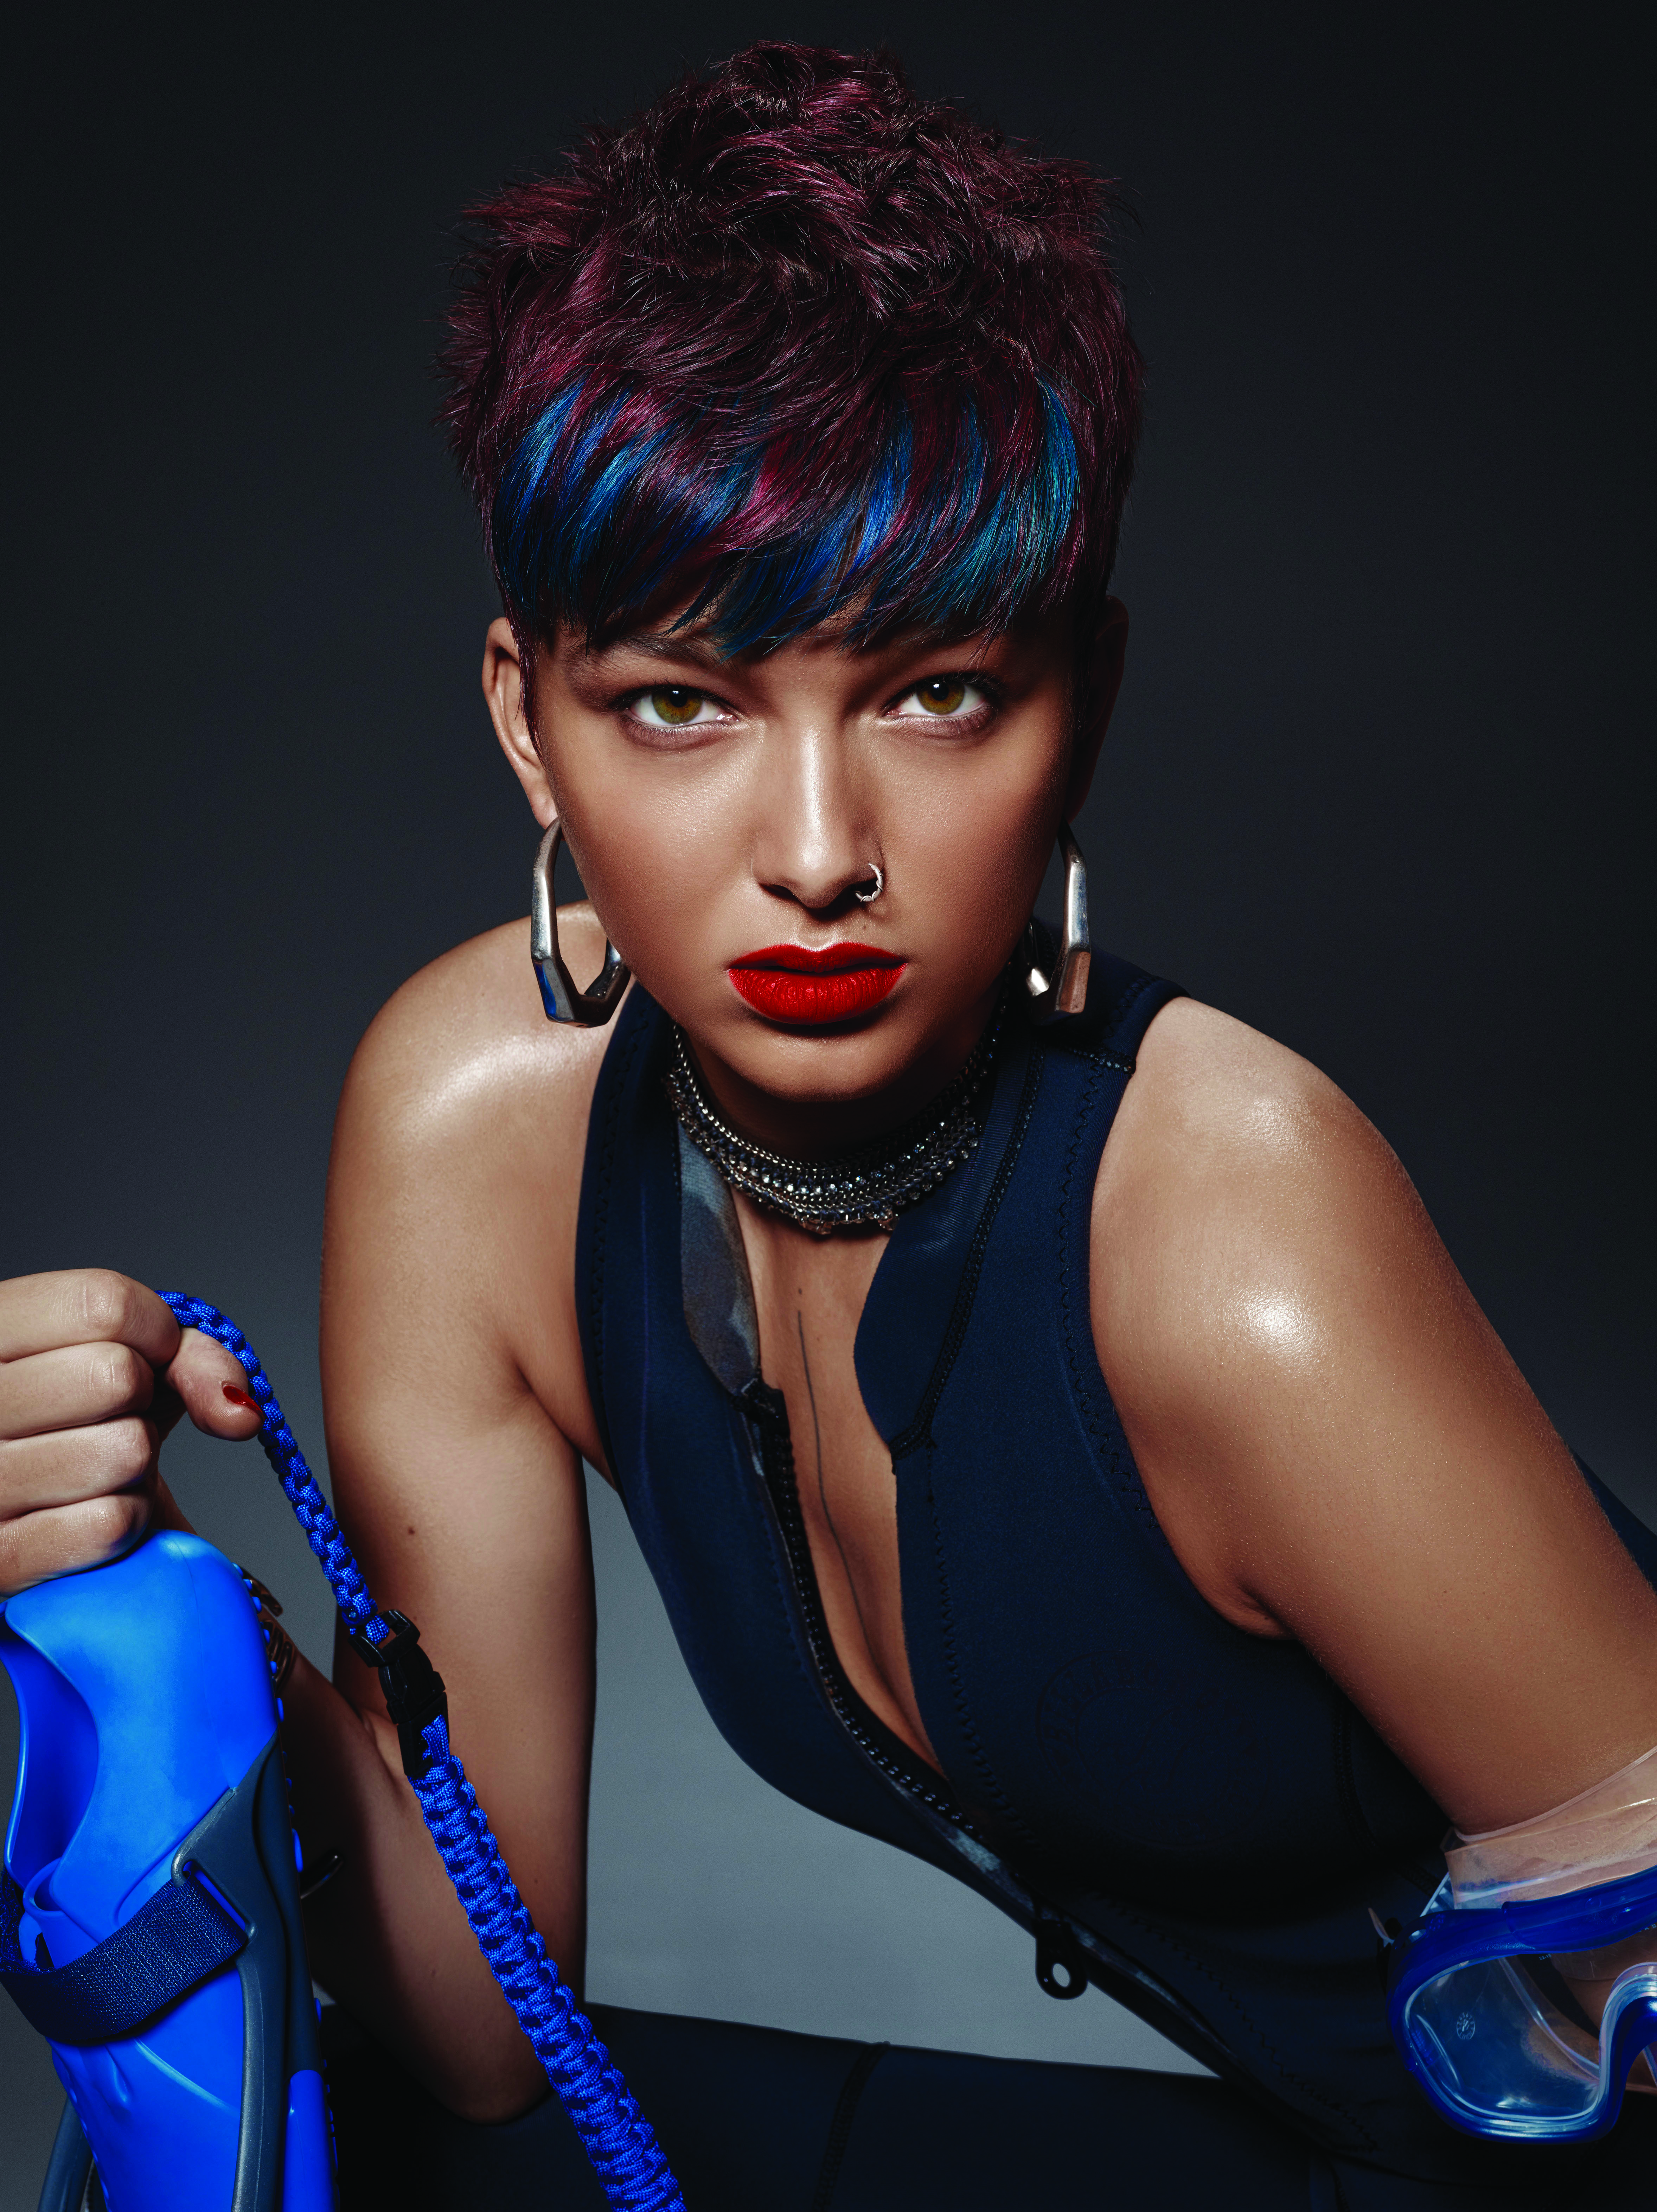 Burgundy and Turquoise Color-Blocked Hair by Framesi